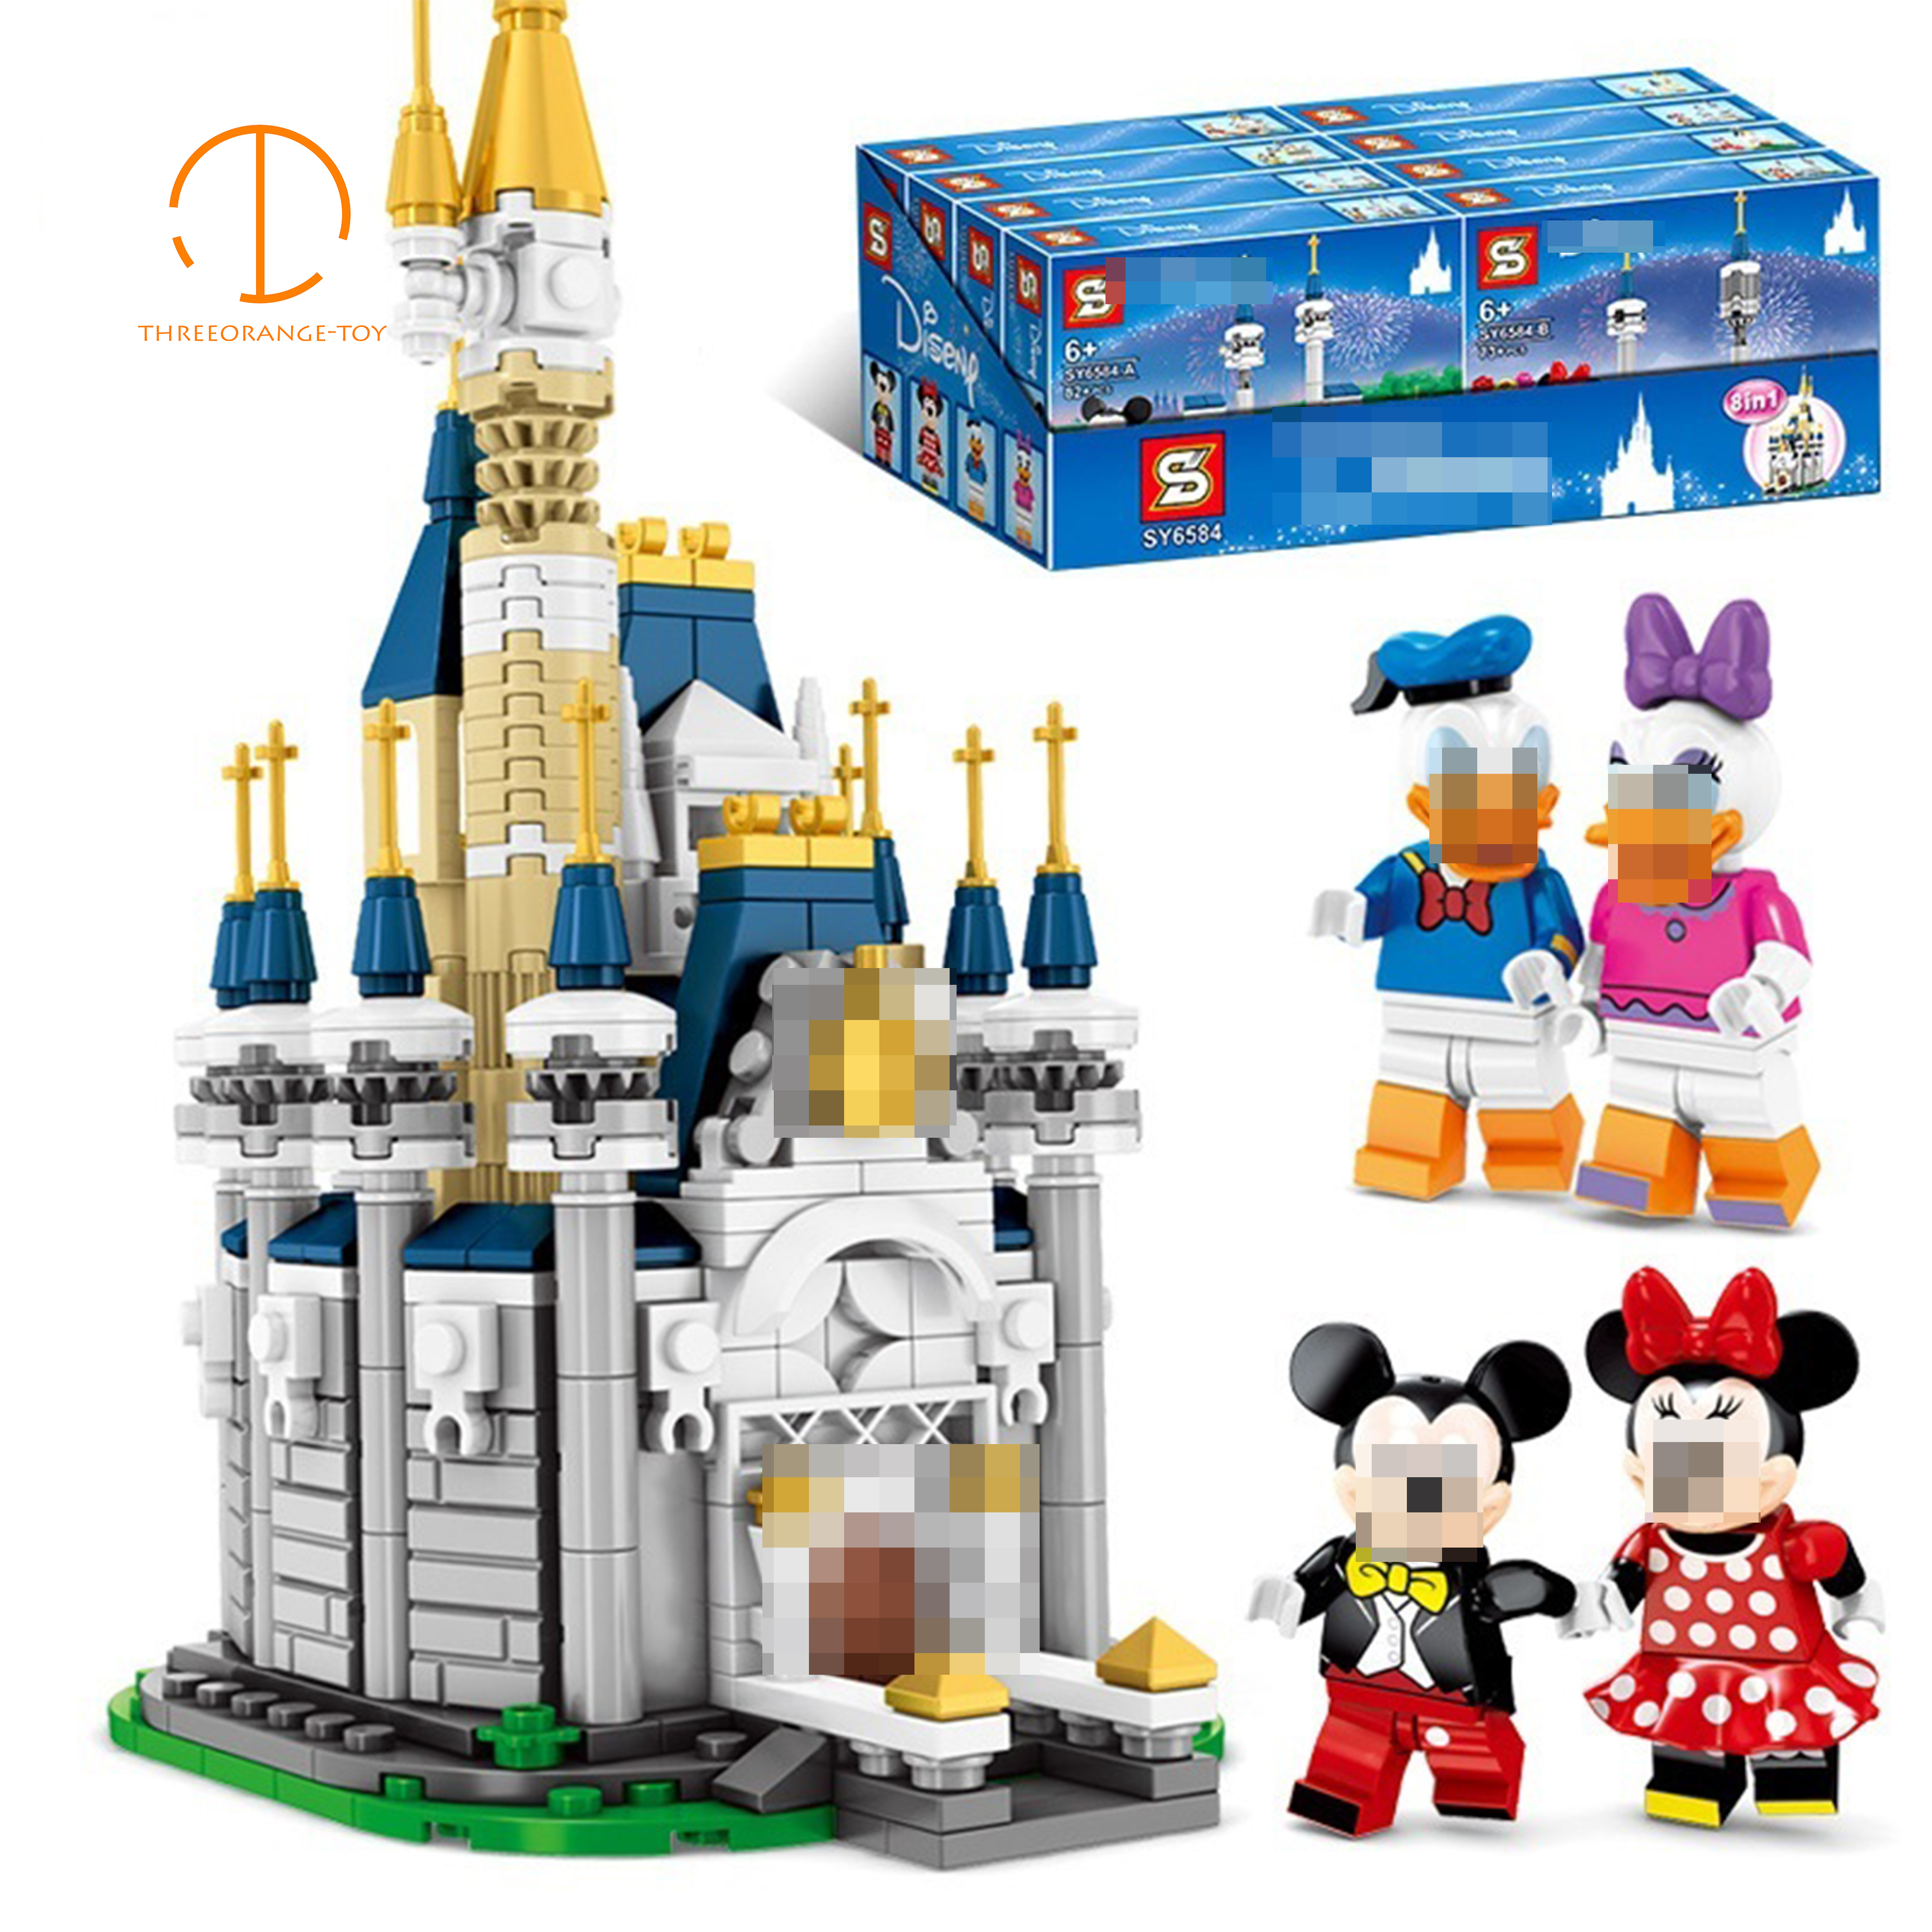 Mickeyed and Minnieed 8in1 Fairy tale castle Compatible with Building Block Bricks Toys for kids legoing birthday giftsMickeyed and Minnieed 8in1 Fairy tale castle Compatible with Building Block Bricks Toys for kids legoing birthday gifts